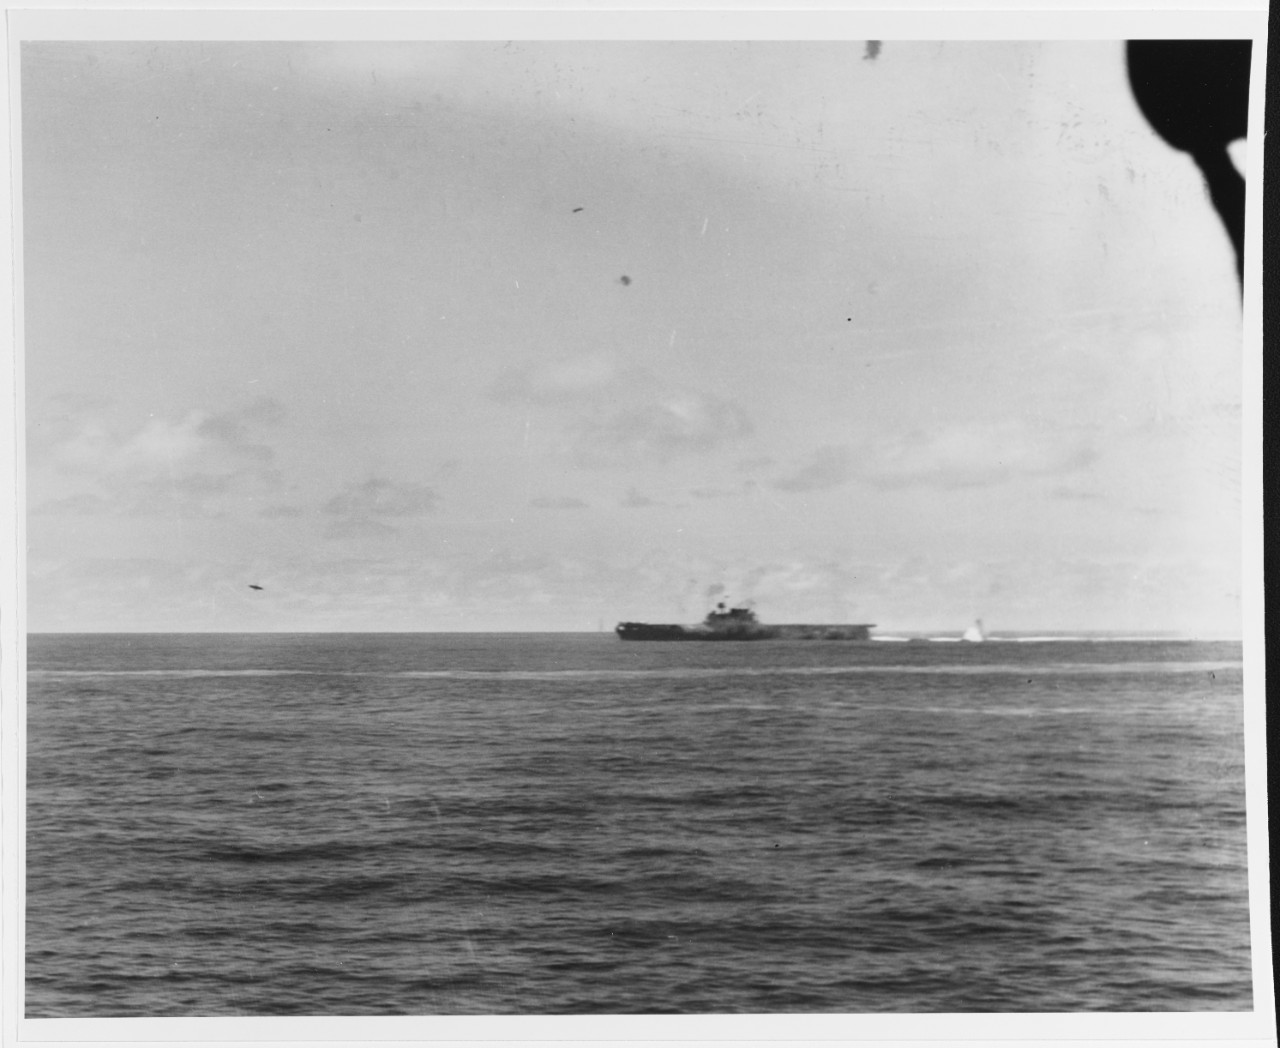 Photo #: 80-G-32355  Battle of Midway, June 1942